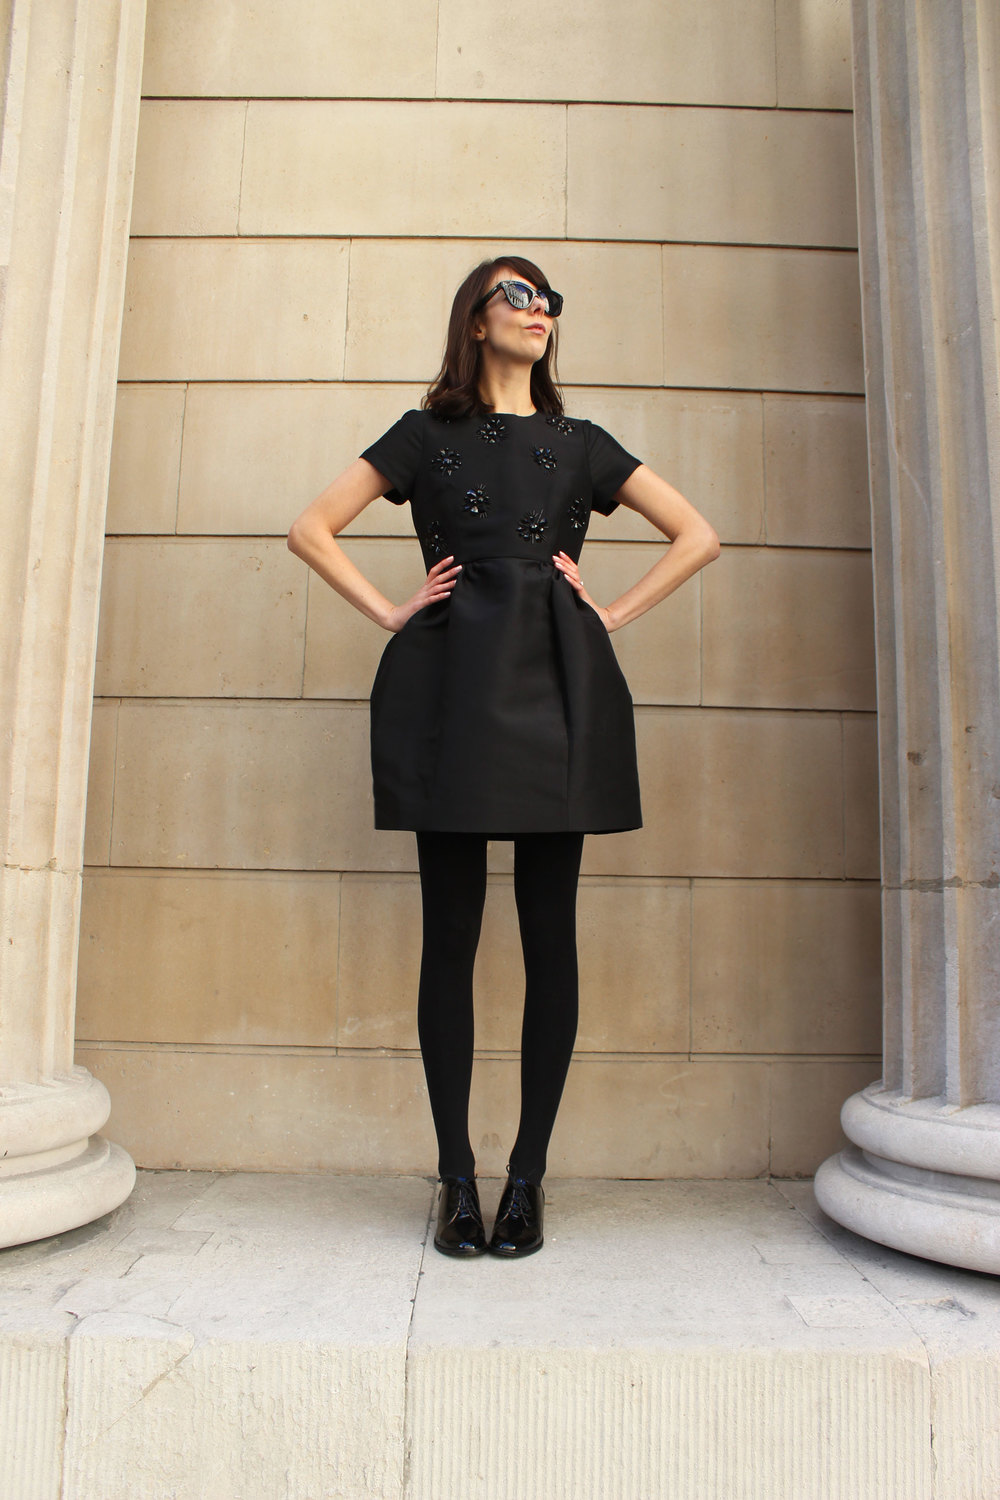 Pairing a LBD with opaque tights and patent flats.